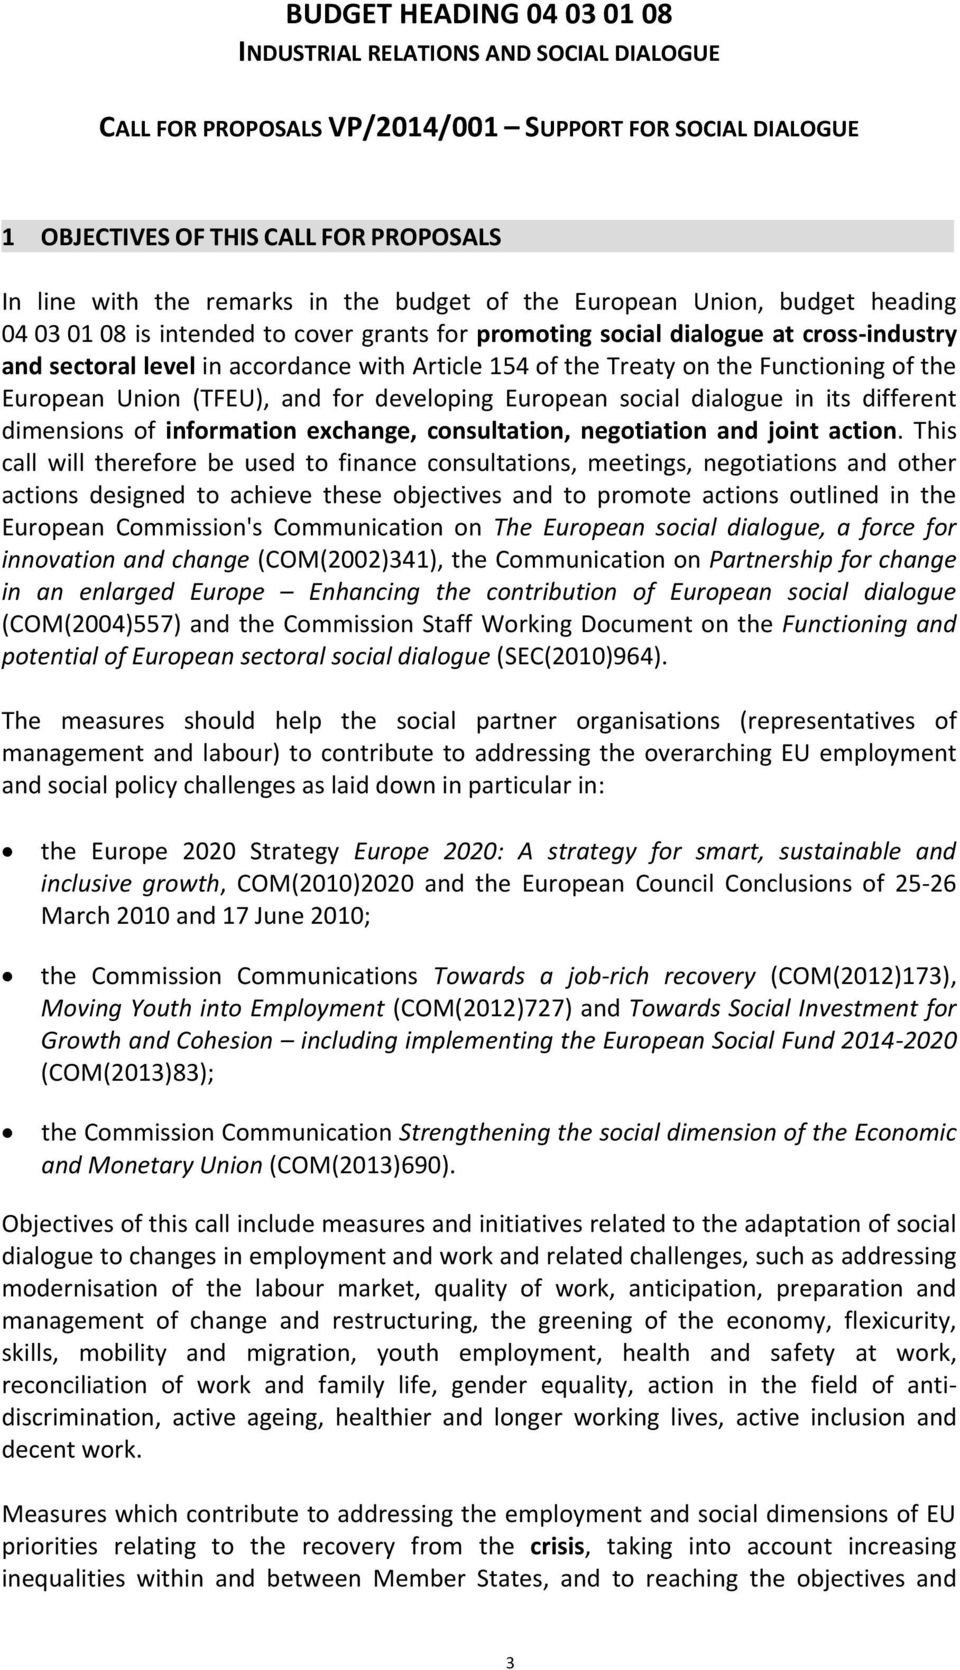 the Functioning of the European Union (TFEU), and for developing European social dialogue in its different dimensions of information exchange, consultation, negotiation and joint action.